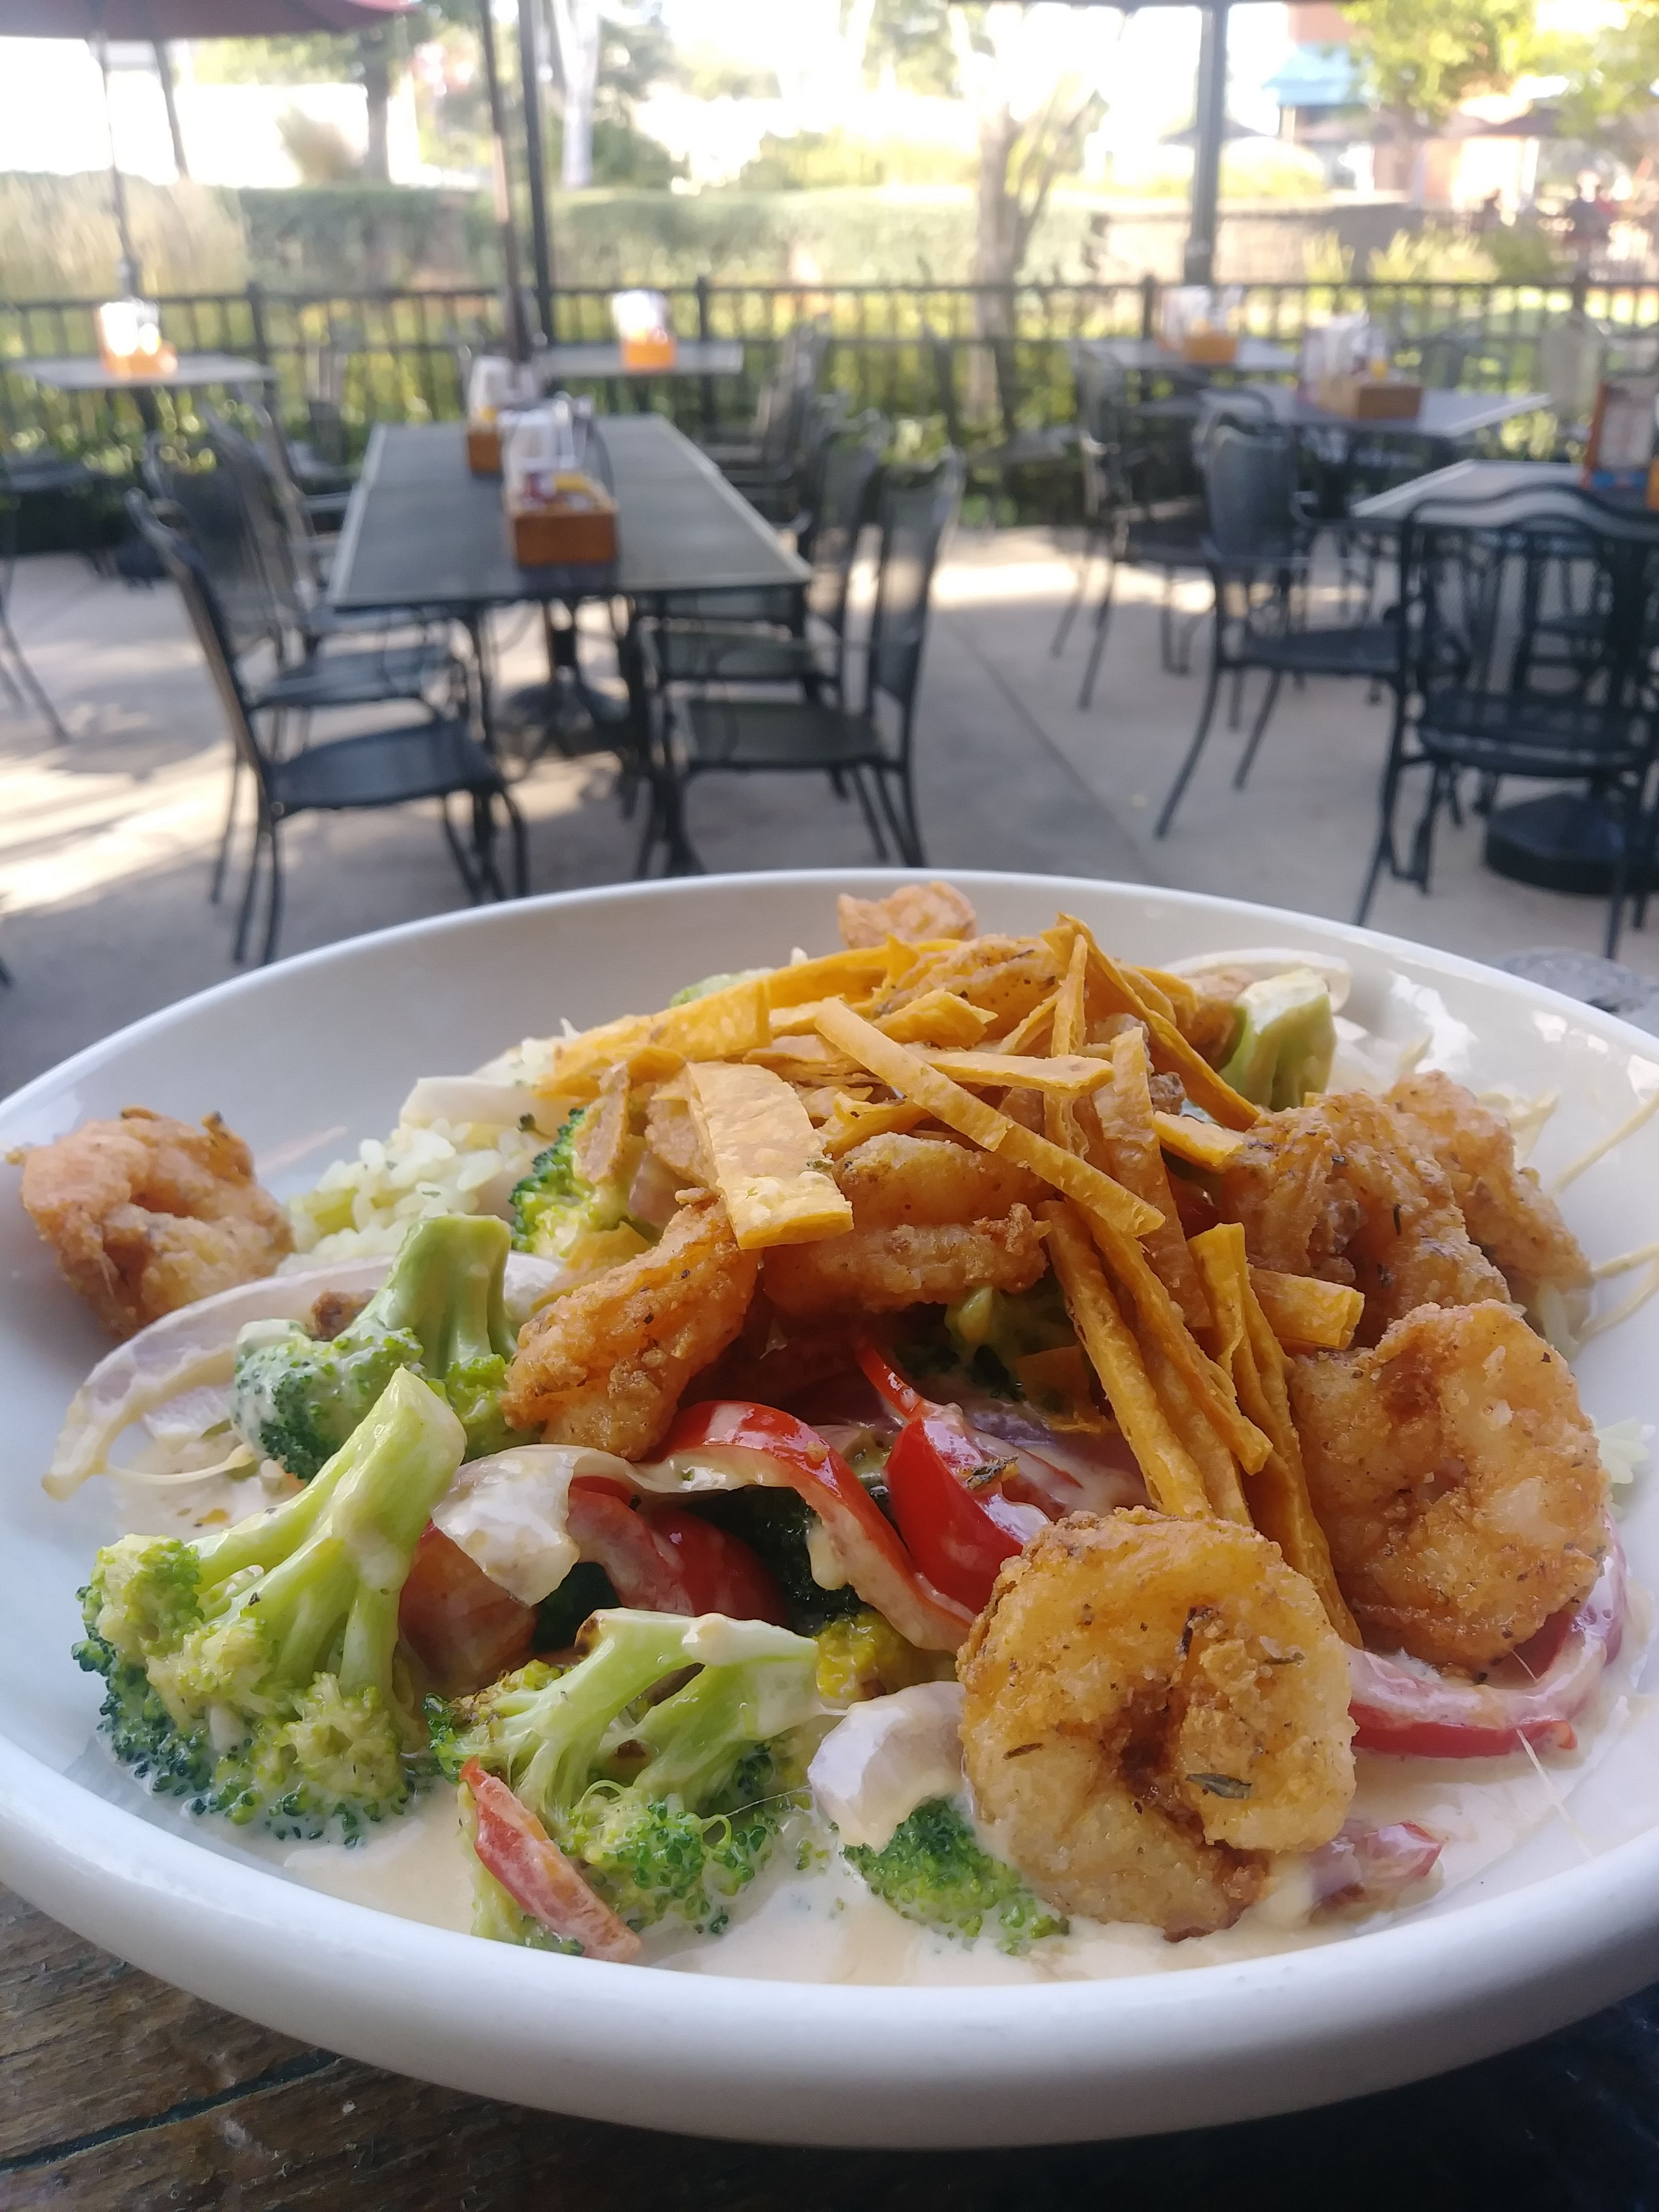 Tonight S Dinner Special Is A Cheddar Crusted Shrimp And Rice Bowl